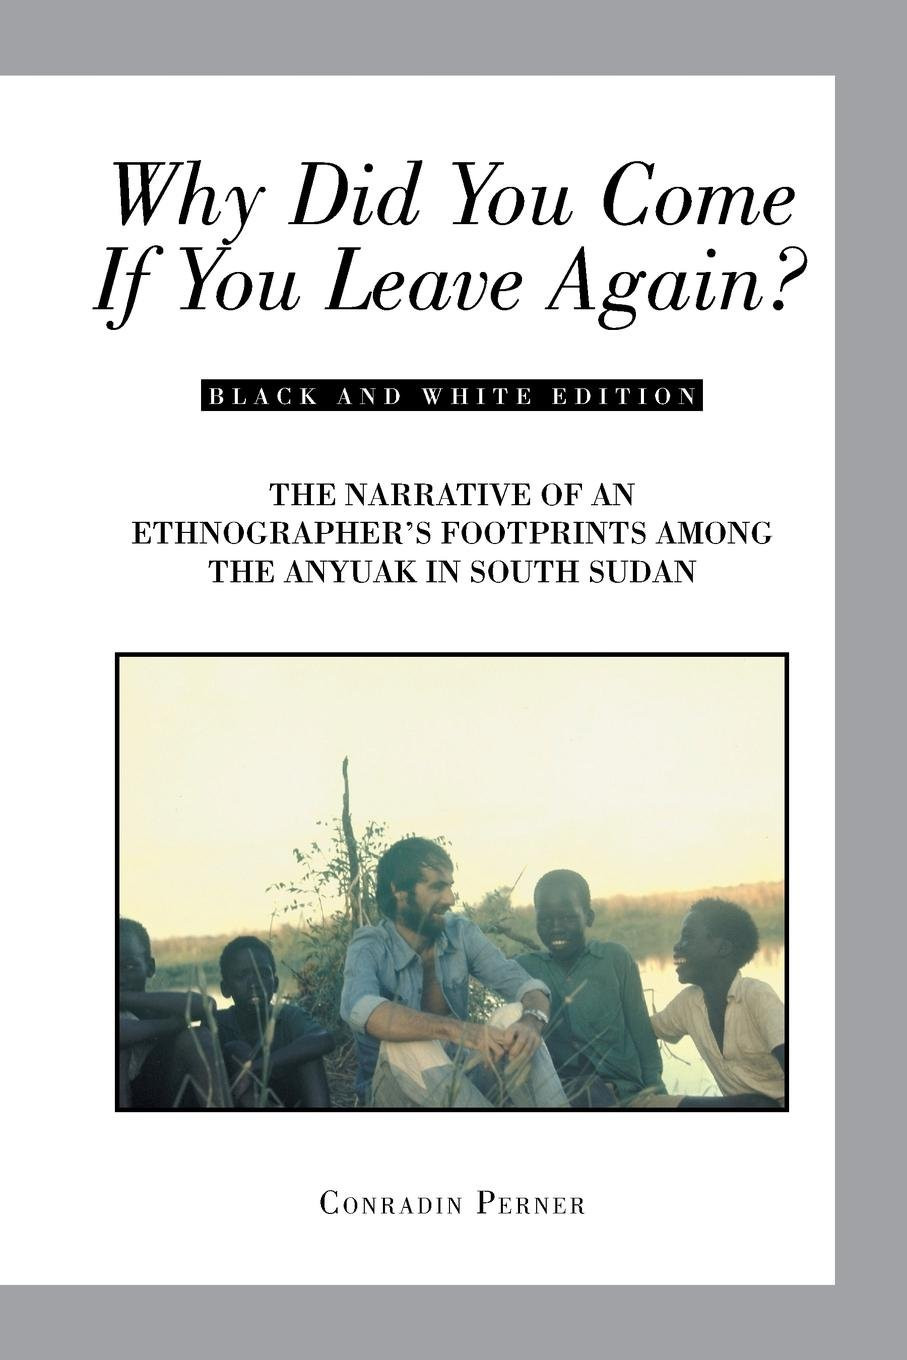 Why Did You Come If You Leave Again? by Conradin Perner _The BookWalker